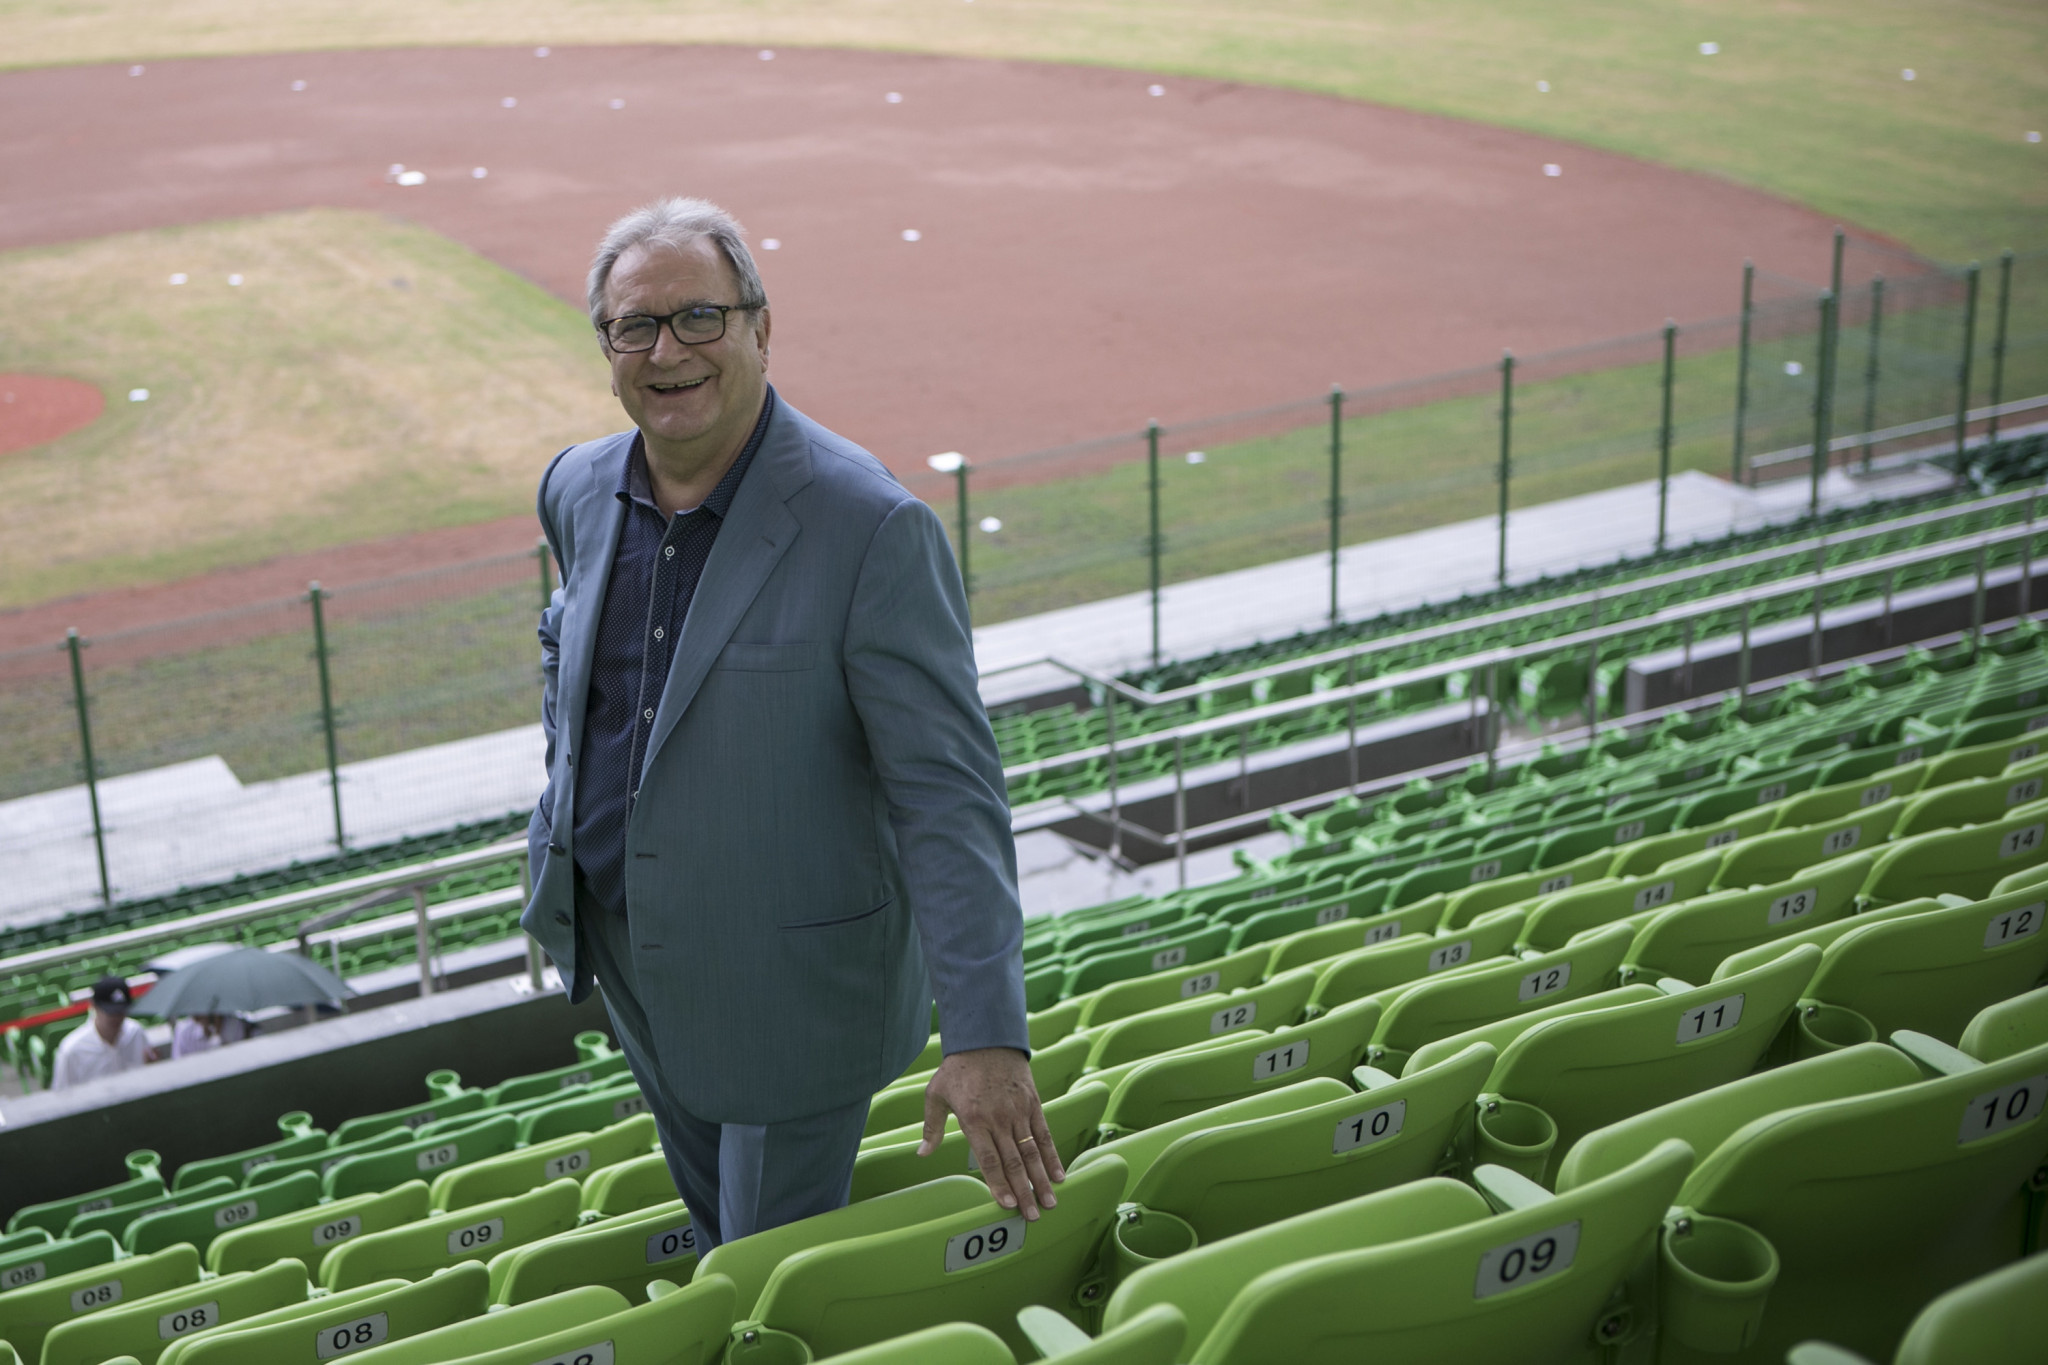 WBSC President Fraccari underlines commitment to connecting young people with baseball and softball